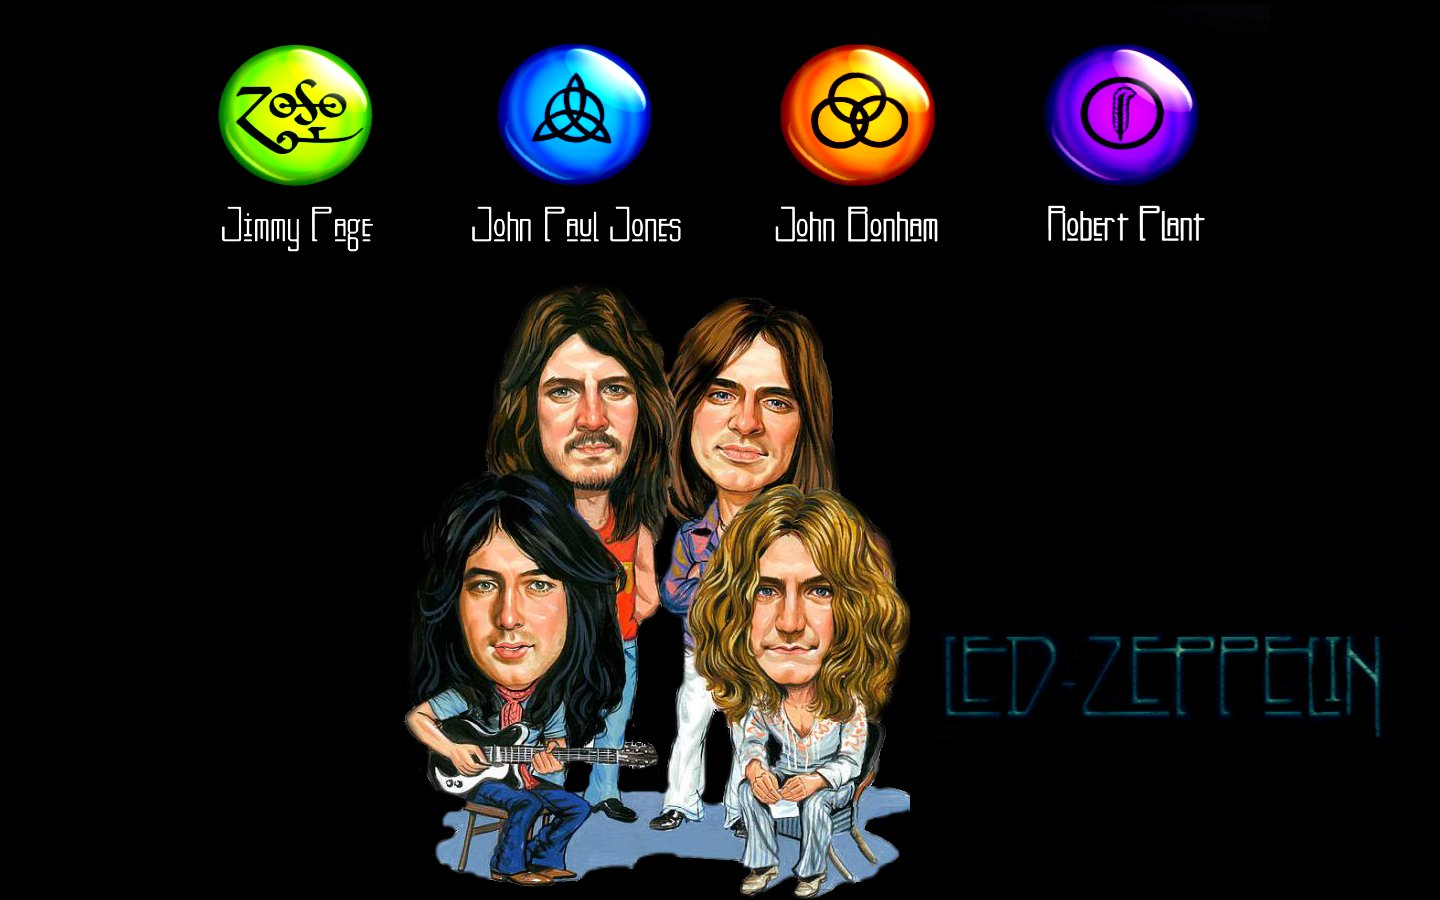 48 led zeppelin hd wallpapers background images wallpaper abyss hd wallpaper background image id402771 1440x900 music led zeppelin 8 like voltagebd